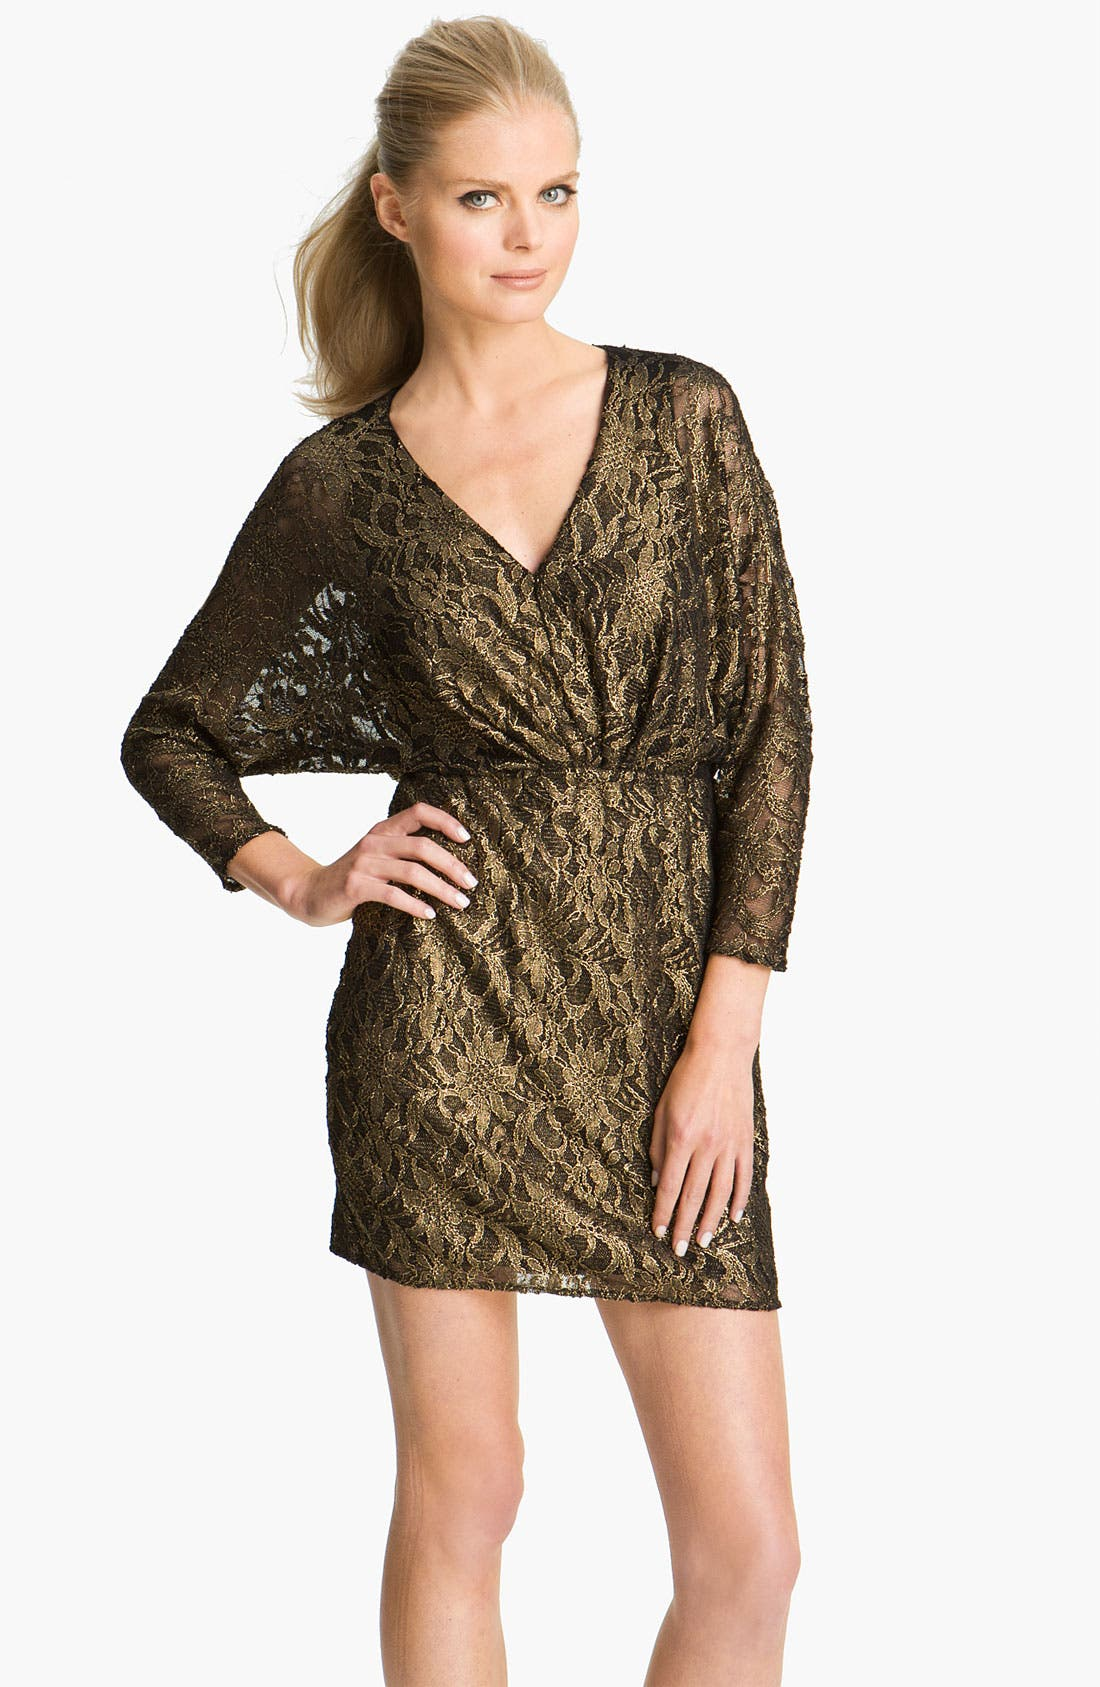 Alternate Image 1 Selected - Trina Turk 'Birch' Metallic Lace Blouson Dress